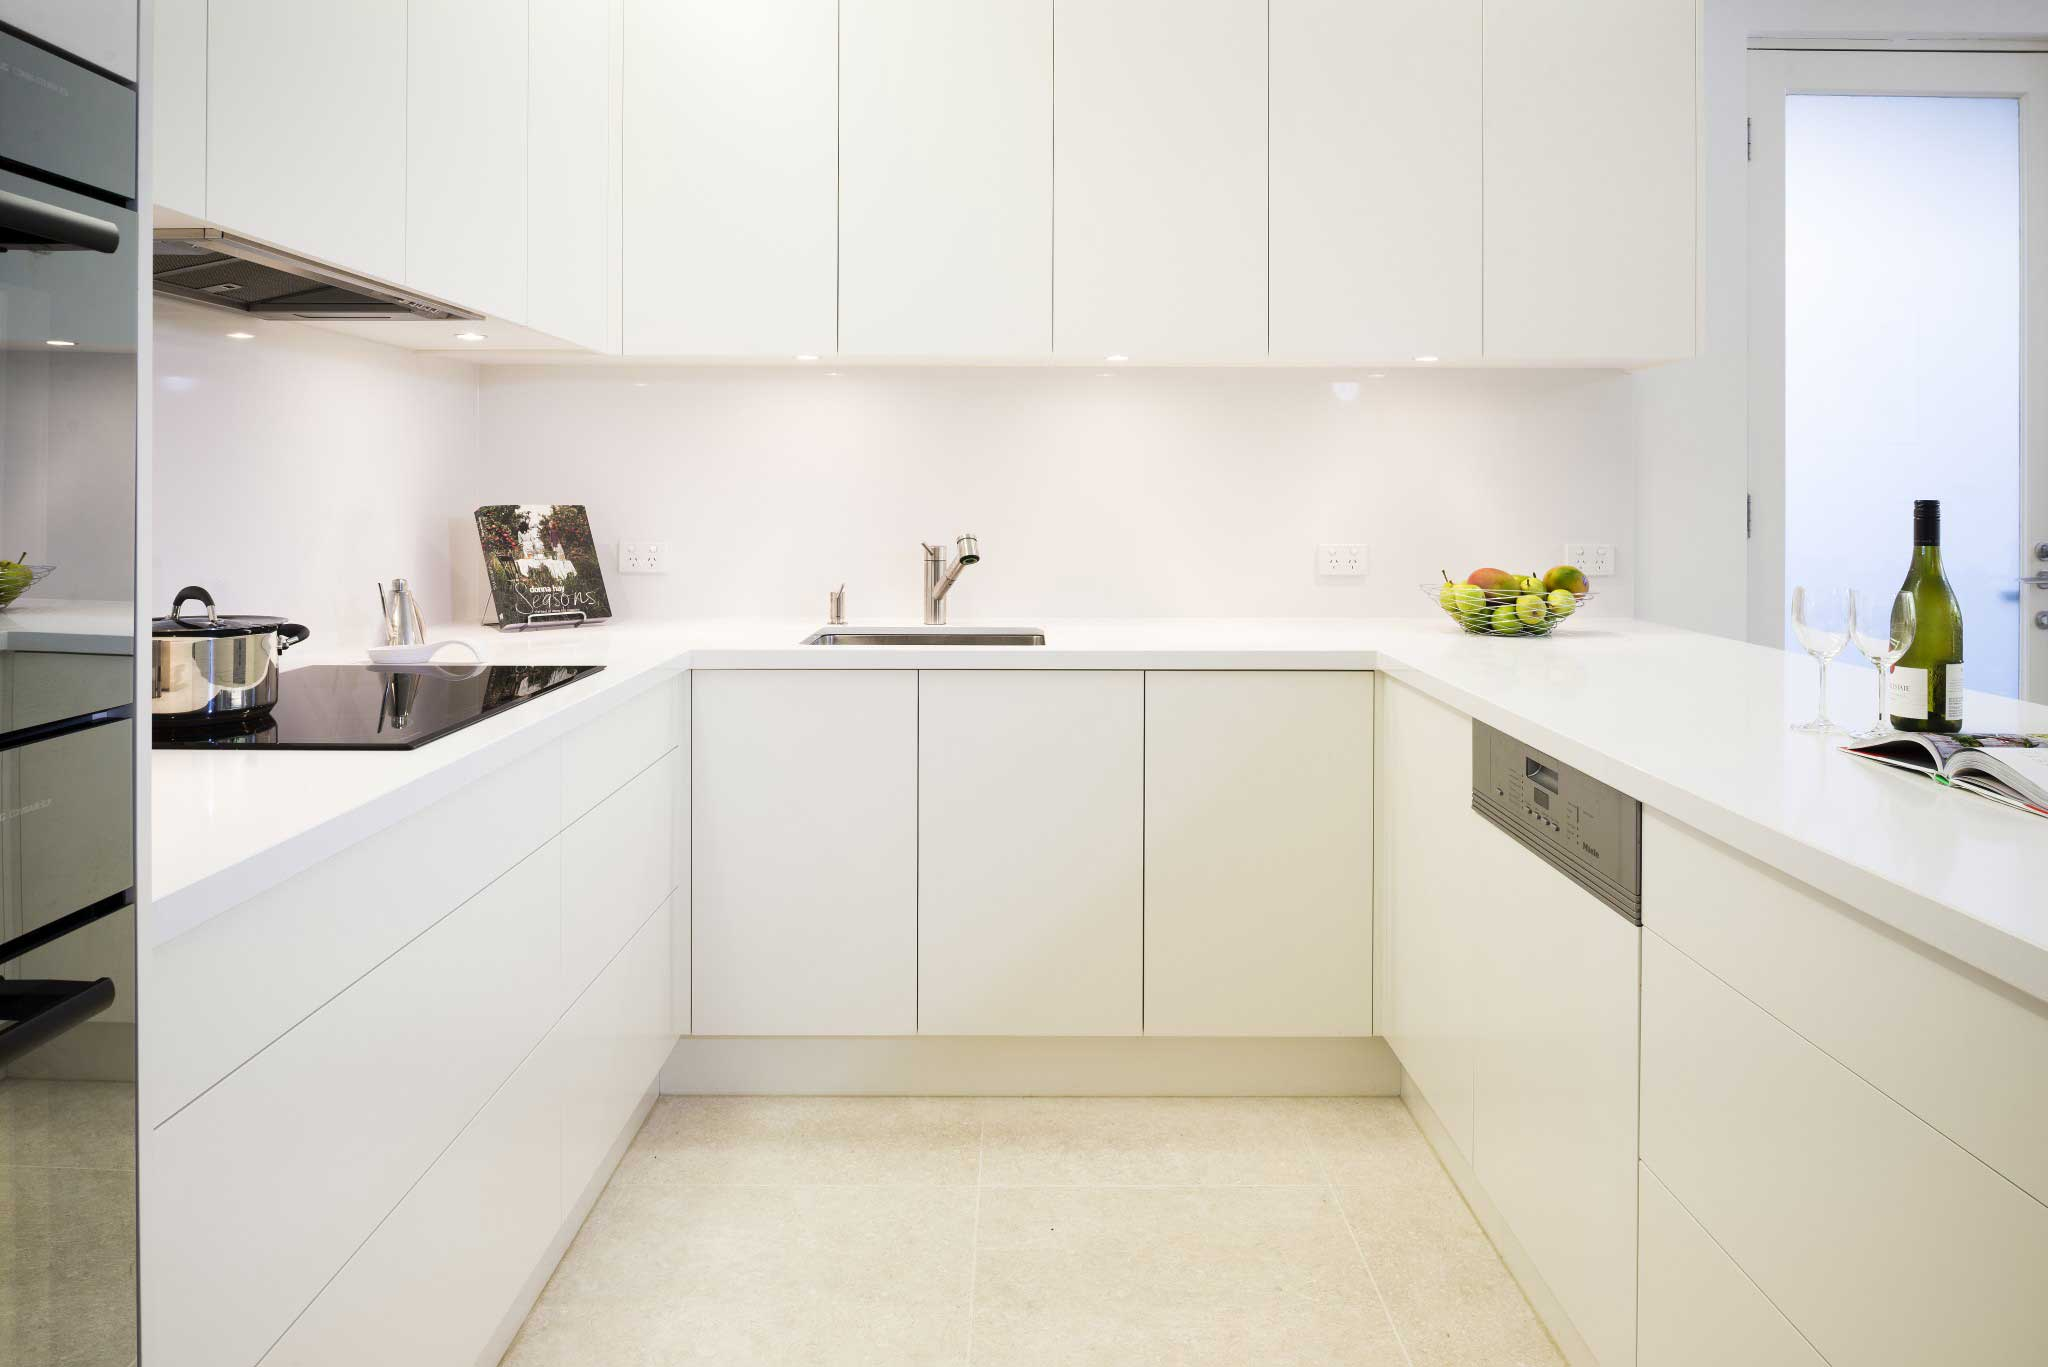 Flat Pack Kitchen Cupboards Handleless Kitchens Rosemount Kitchens